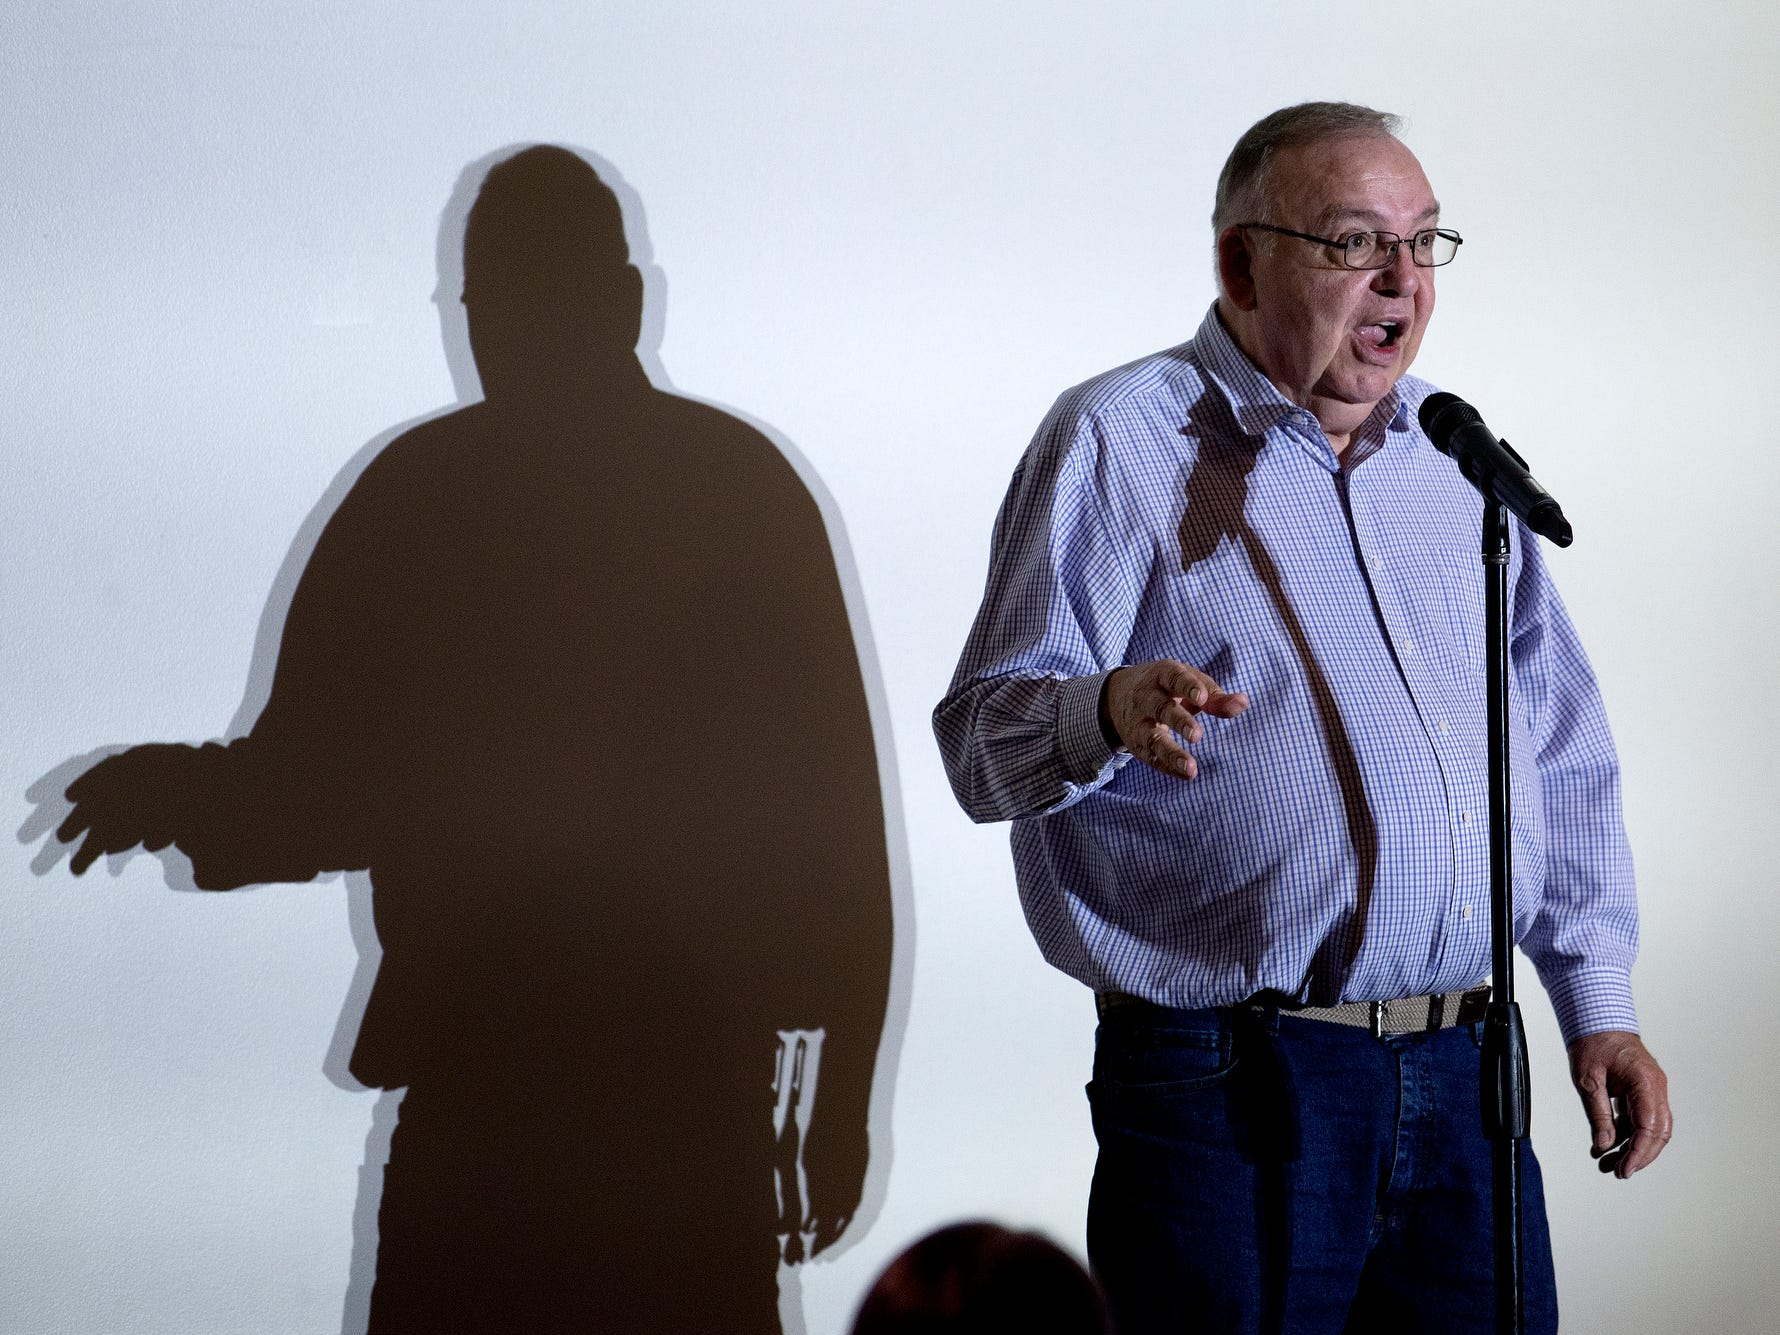 Leon Gottschalk speaks during the Lansing Storytellers Project: 'Are We There Yet?' event on Tuesday, Sept. 18, 2018, at the Hannah Community Center in East Lansing.